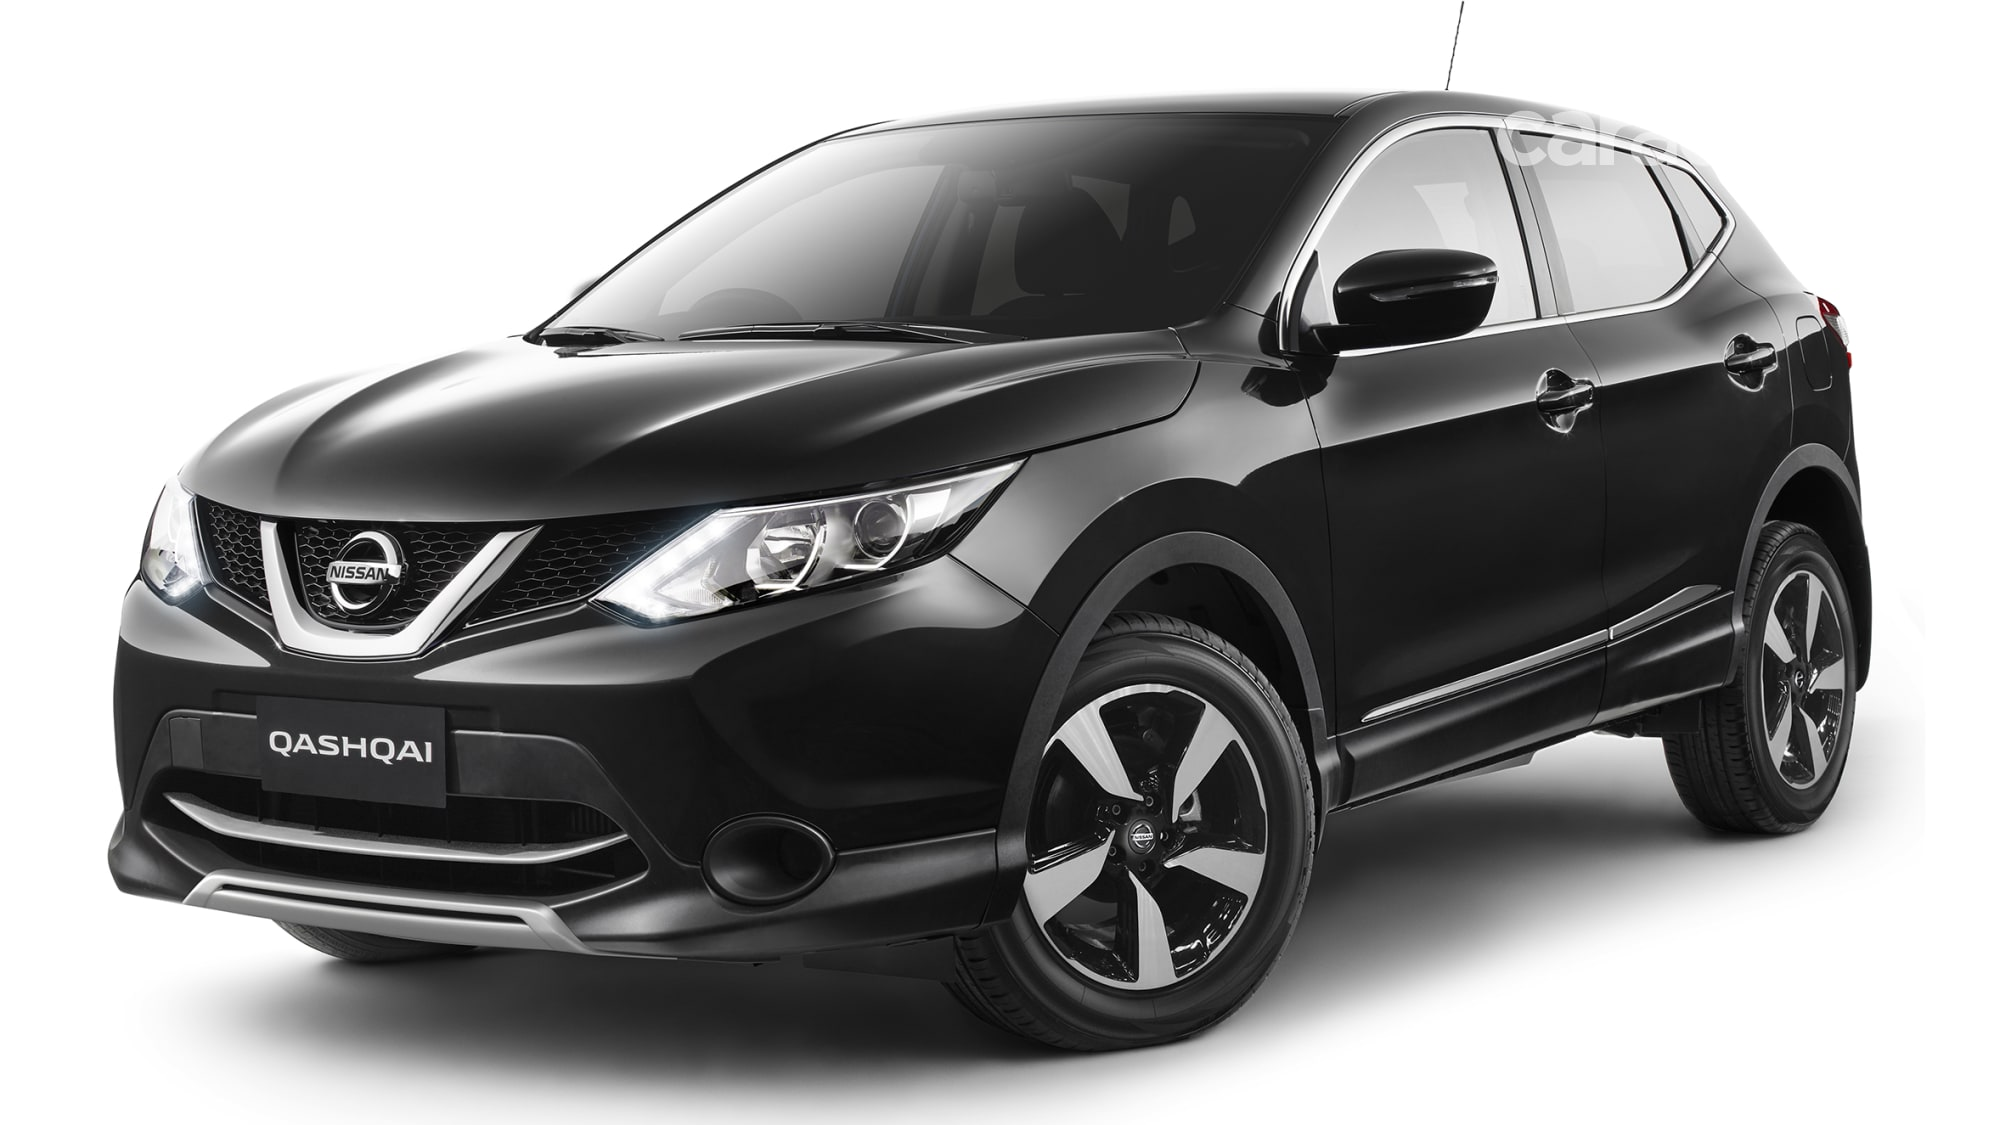 nissan qashqai nsport special edition adds value sharp